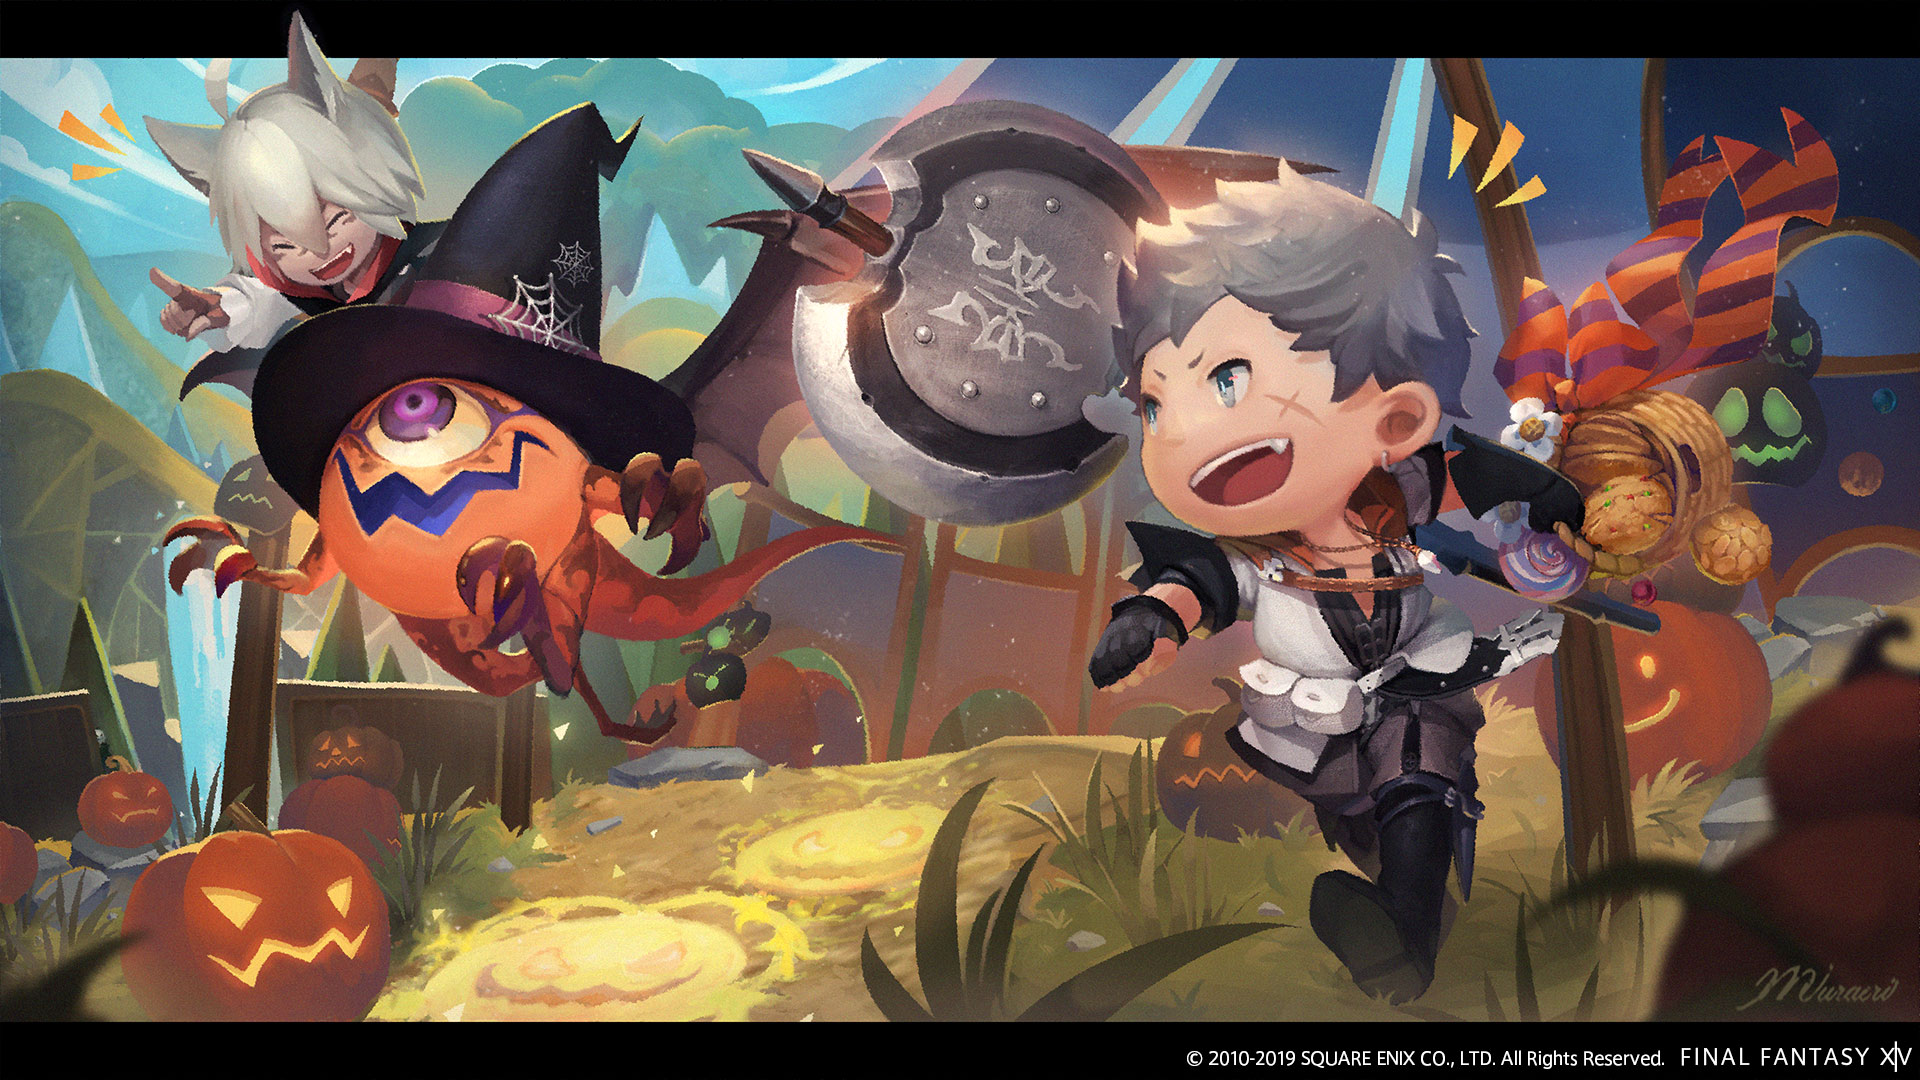 Ffxiv Halloween Event 2020 Final Fantasy XIV Halloween Event To Start October 17